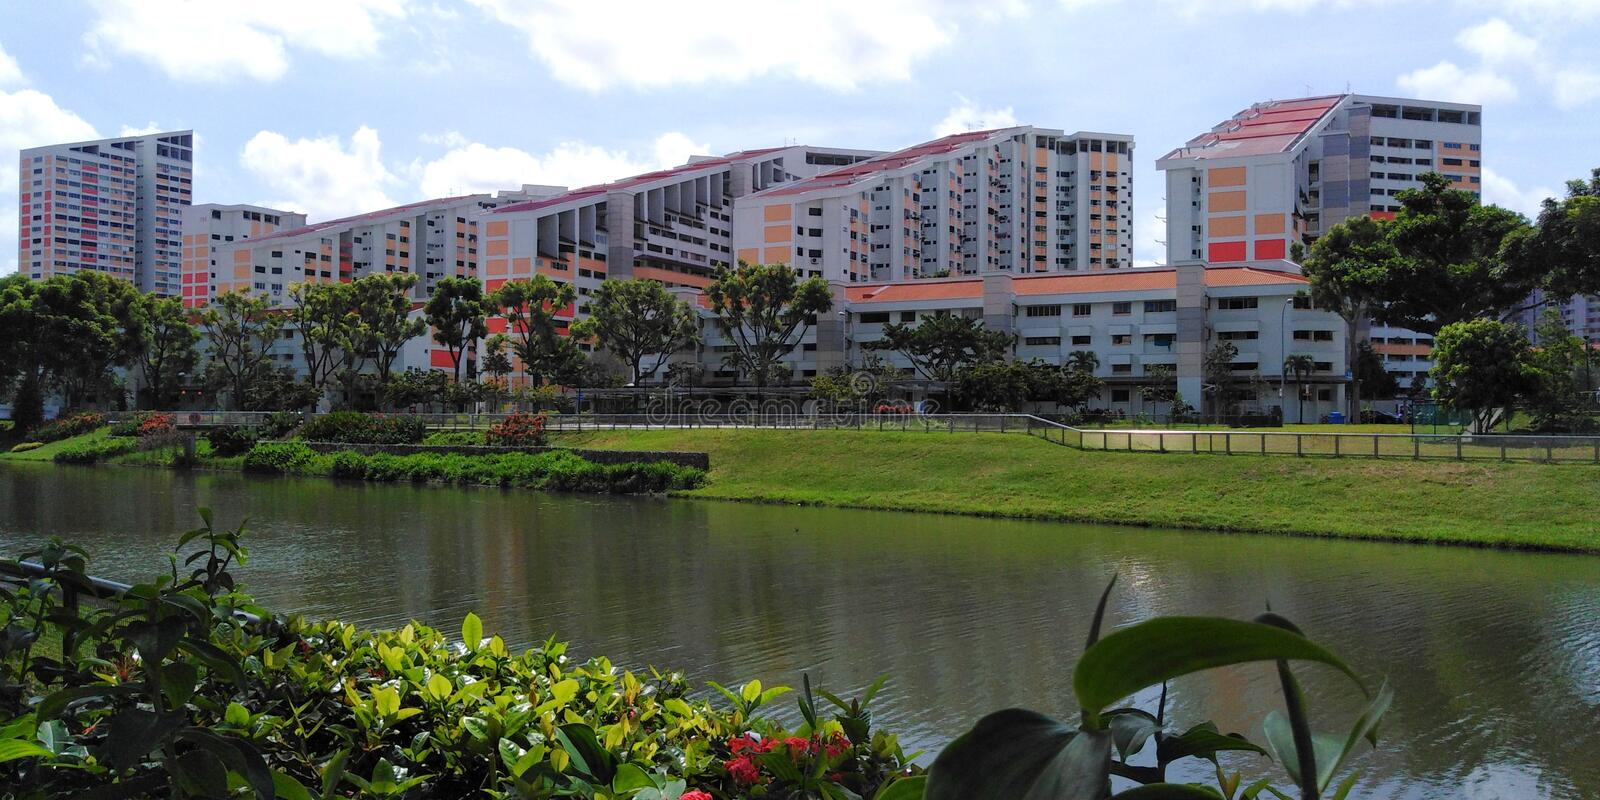 Kallang river at Potong Pasir housing estate. Refurbished Kallang river at Potong Pasir housing estate in Singapore  clean cleaned development nea pub water royalty free stock photo